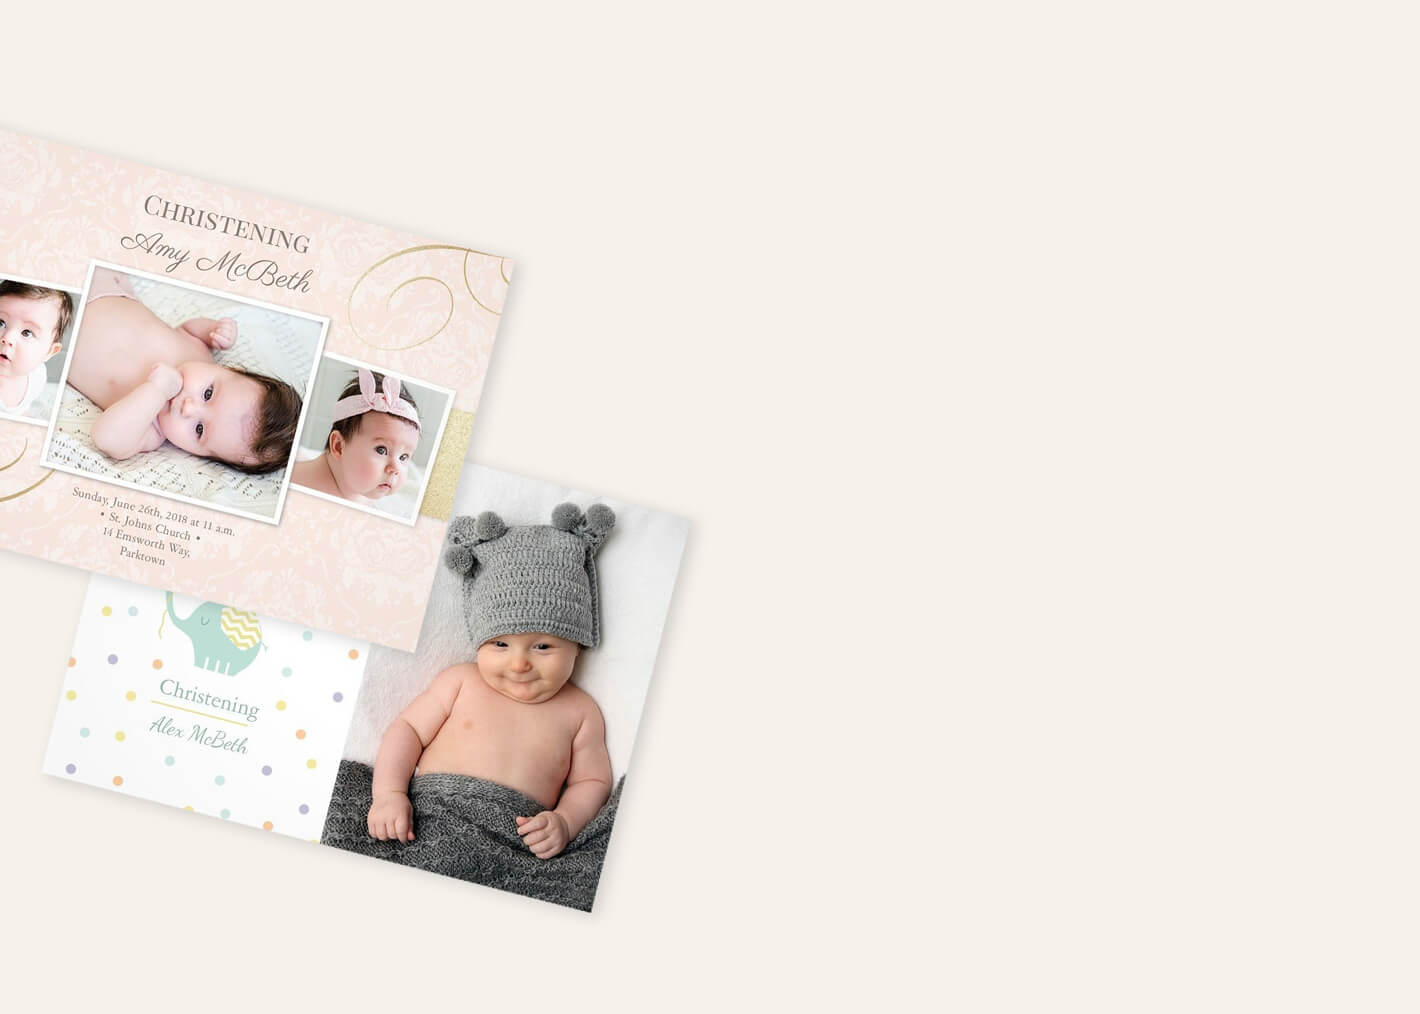 Christening Invitations | Christening Cards | Personalised Invites ...